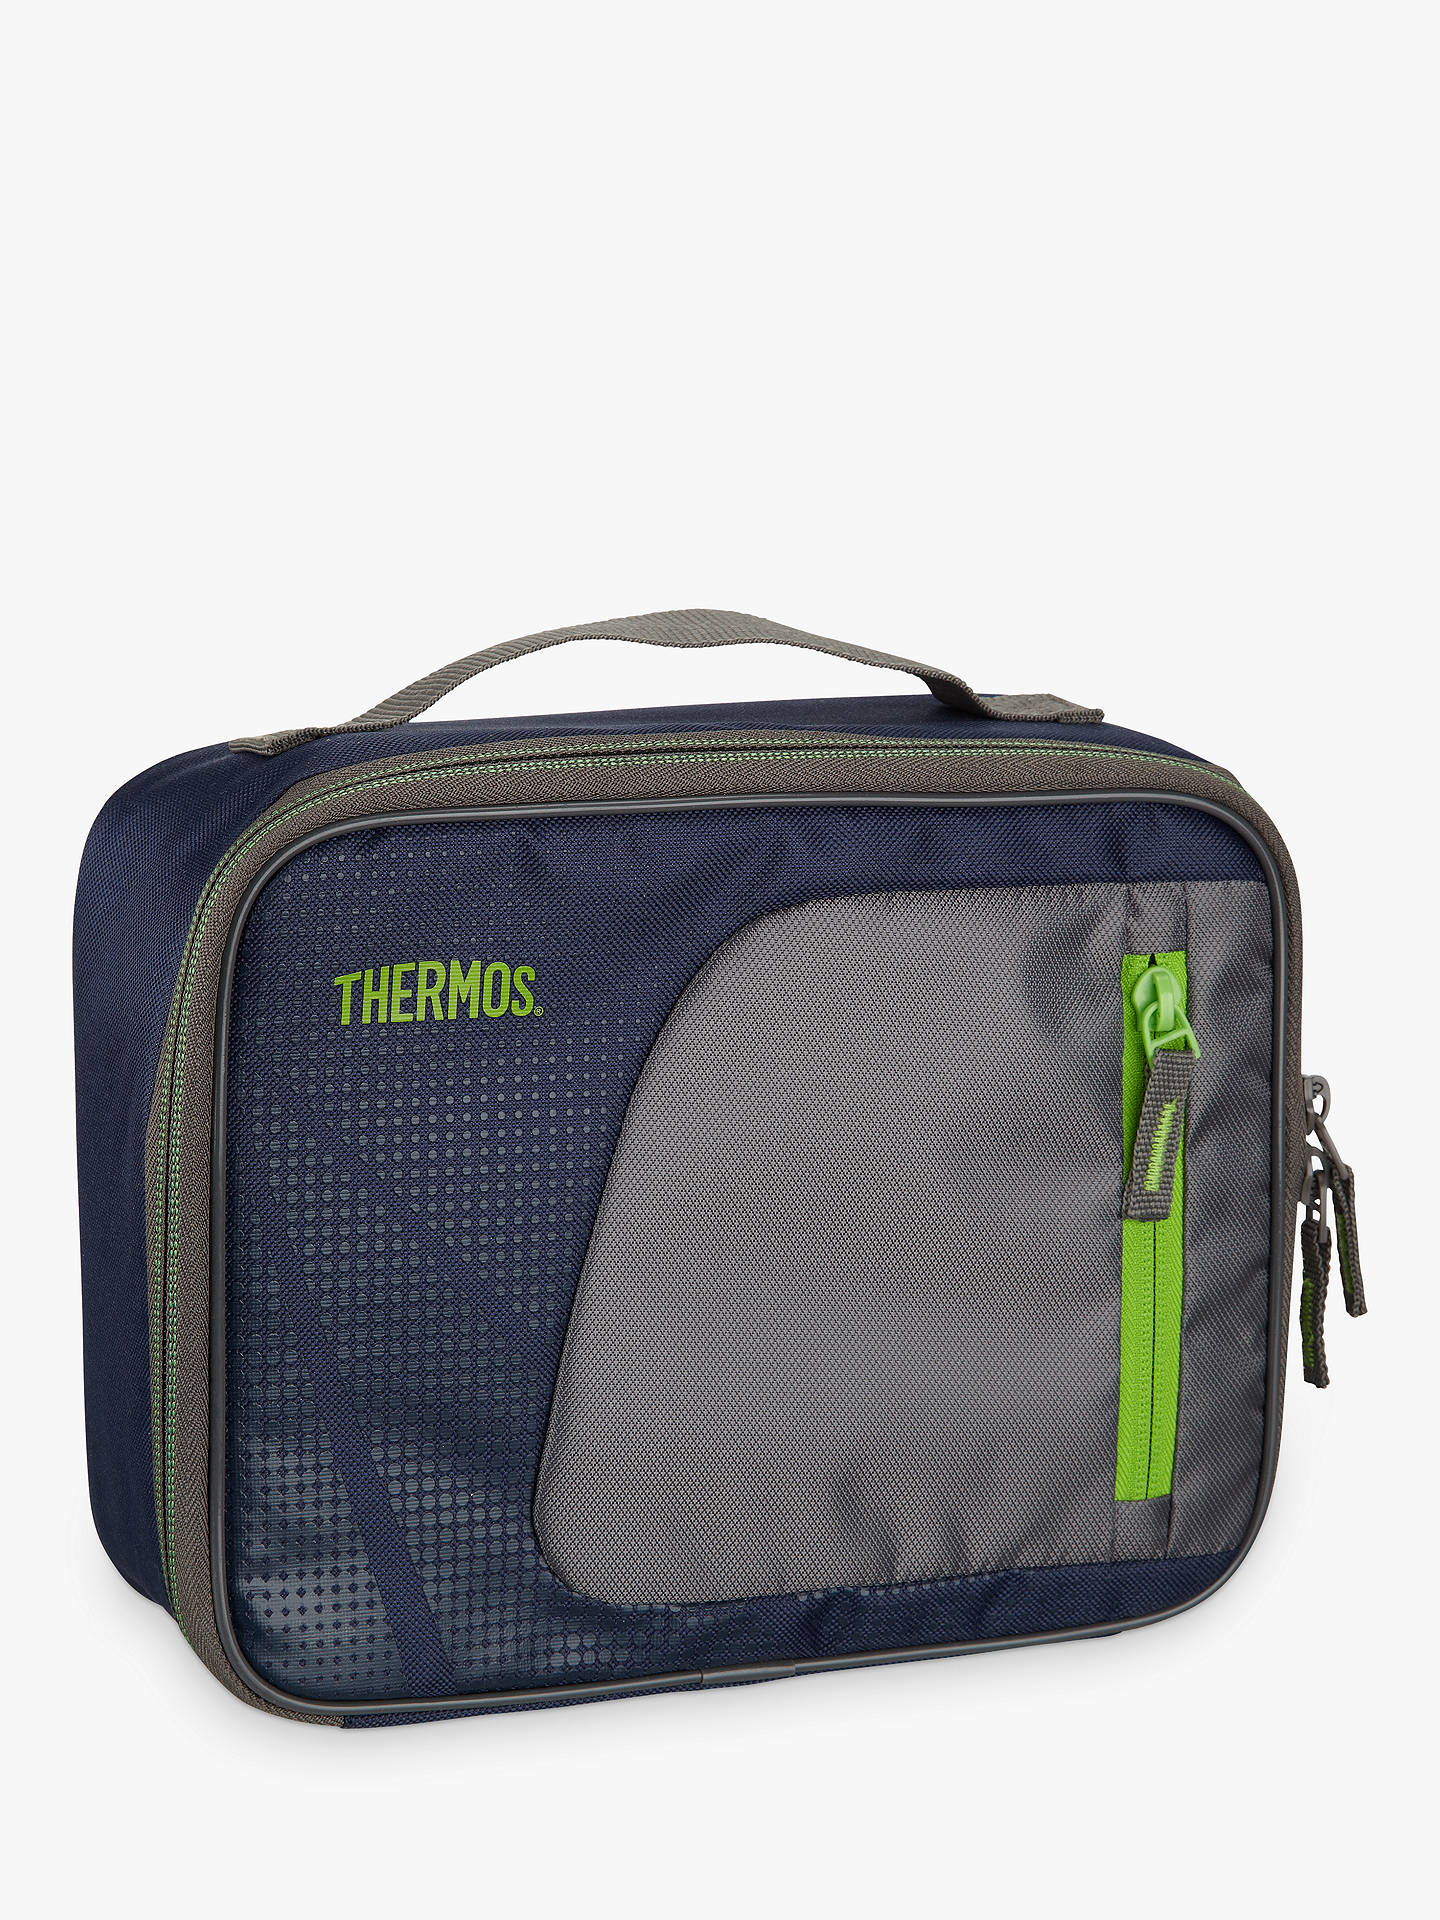 Thermos Lunch Bag Blue Online At Johnlewis